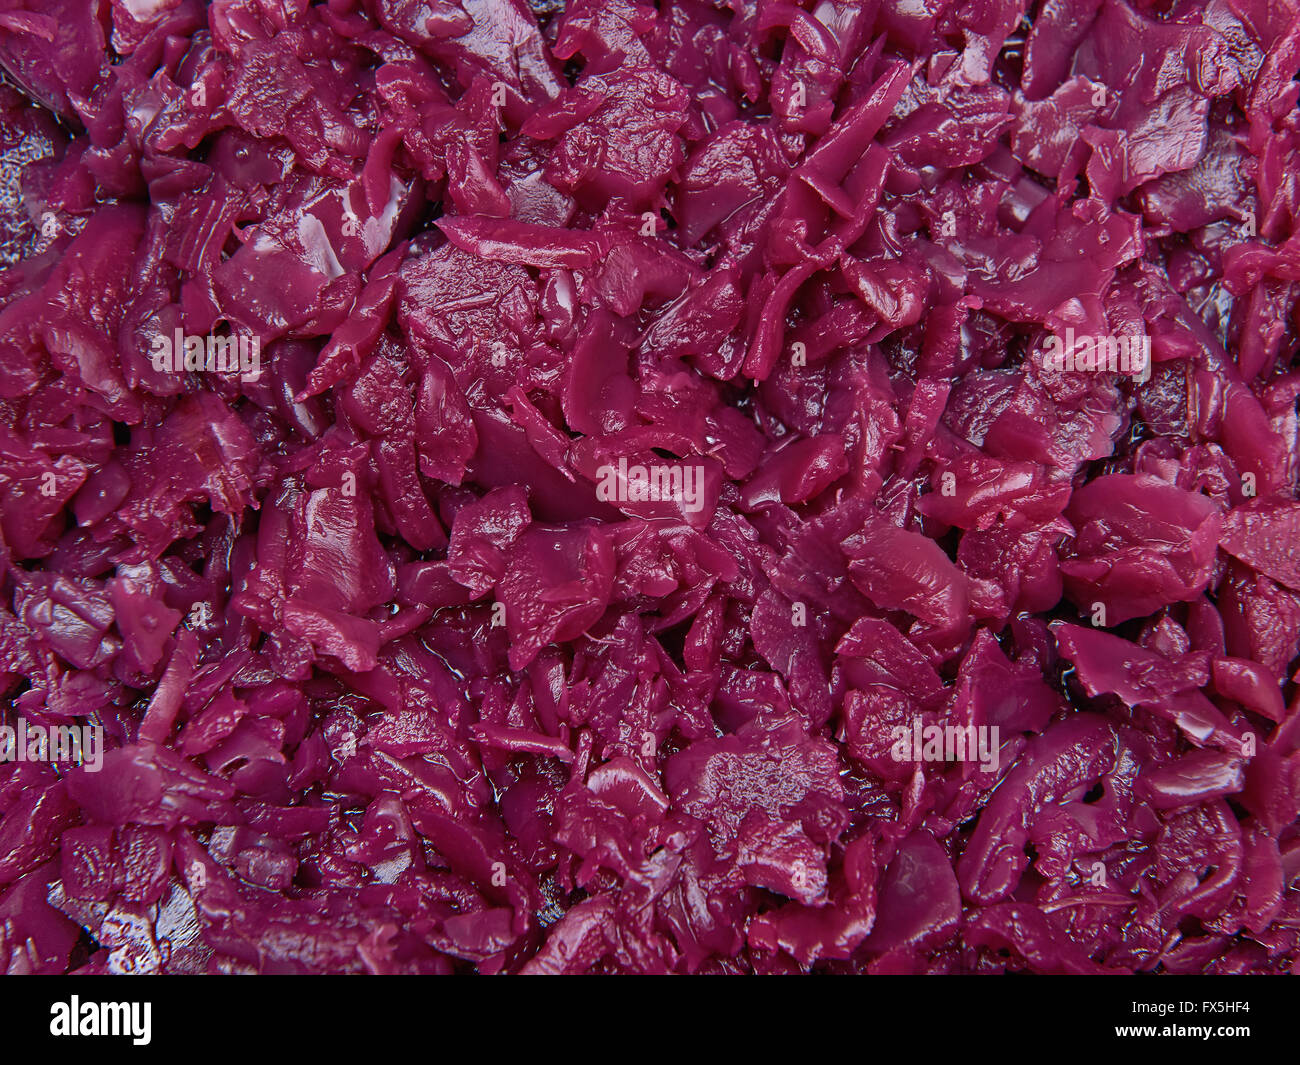 Closeup image of ecological pickled red cabbage - Stock Image